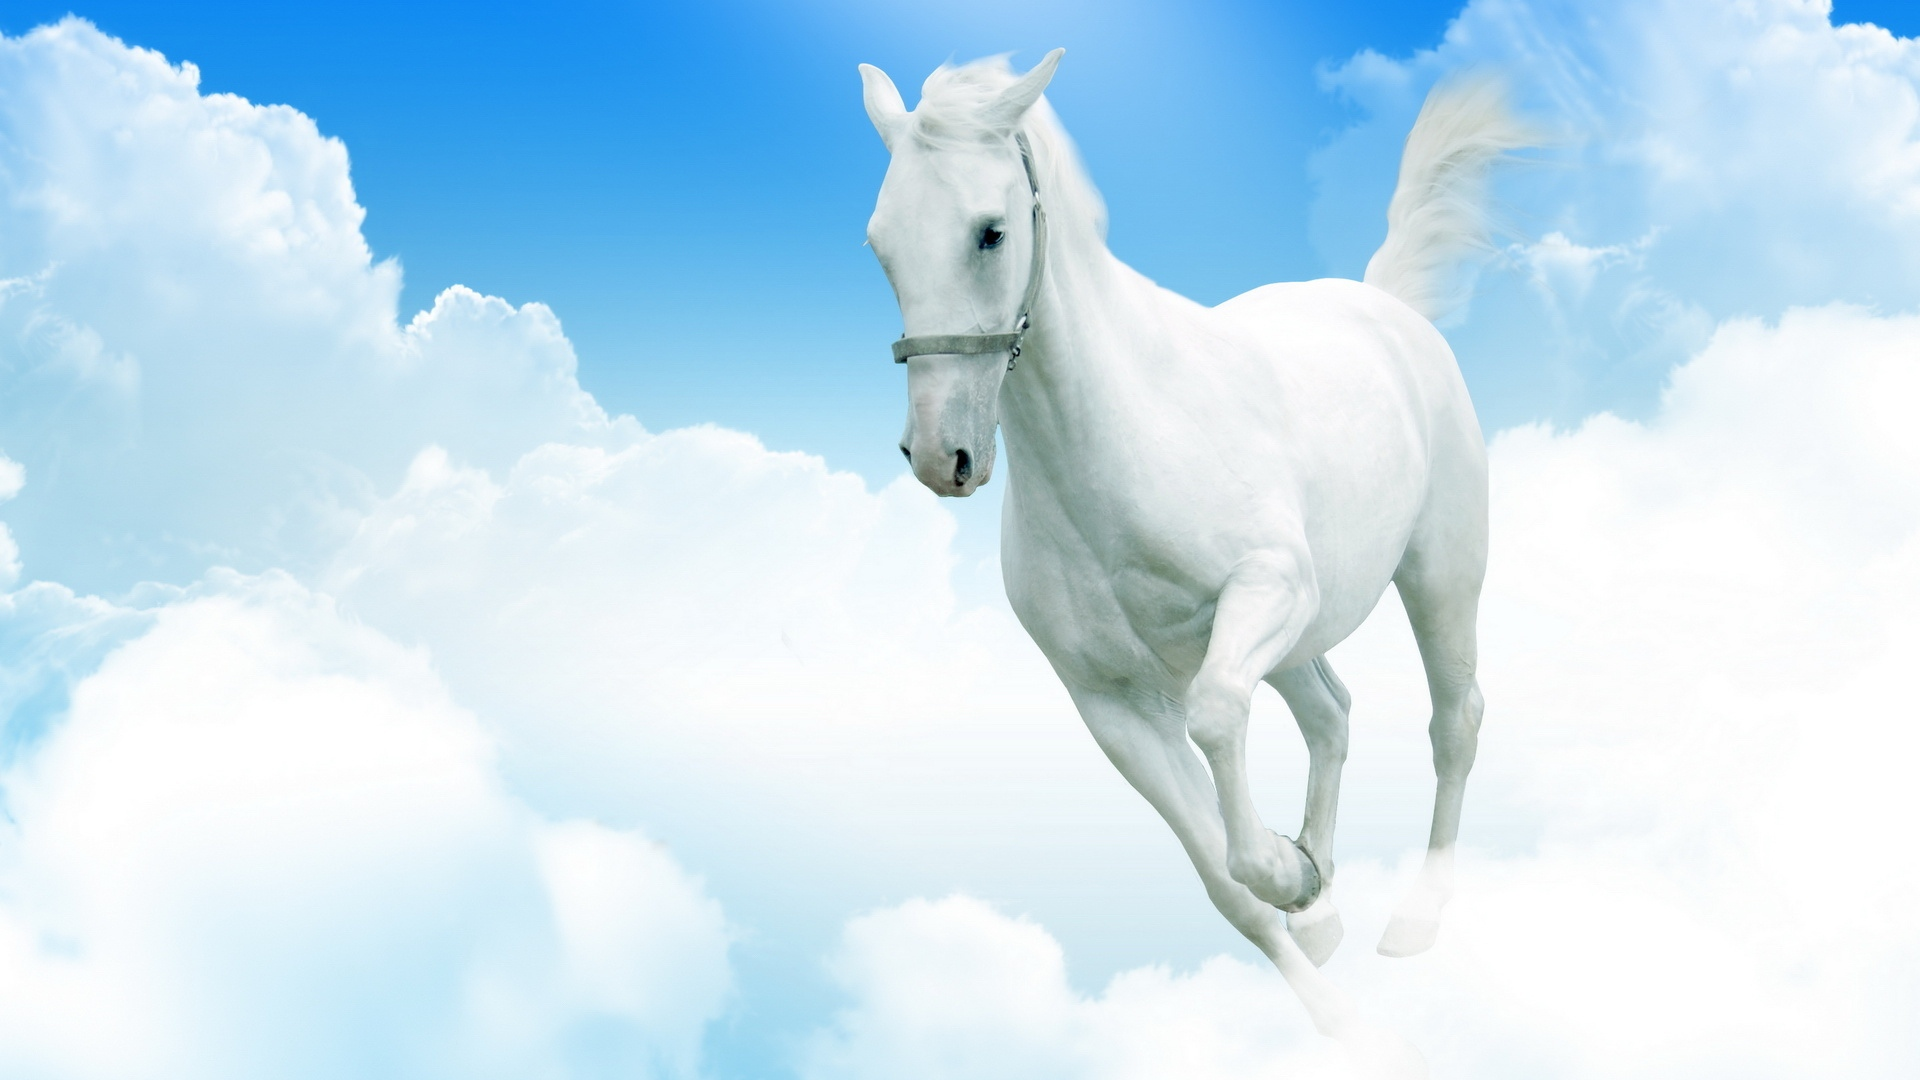 Download Wallpaper 1920x1080 White Horse Clouds Jumping Full Hd 1080p Hd Background